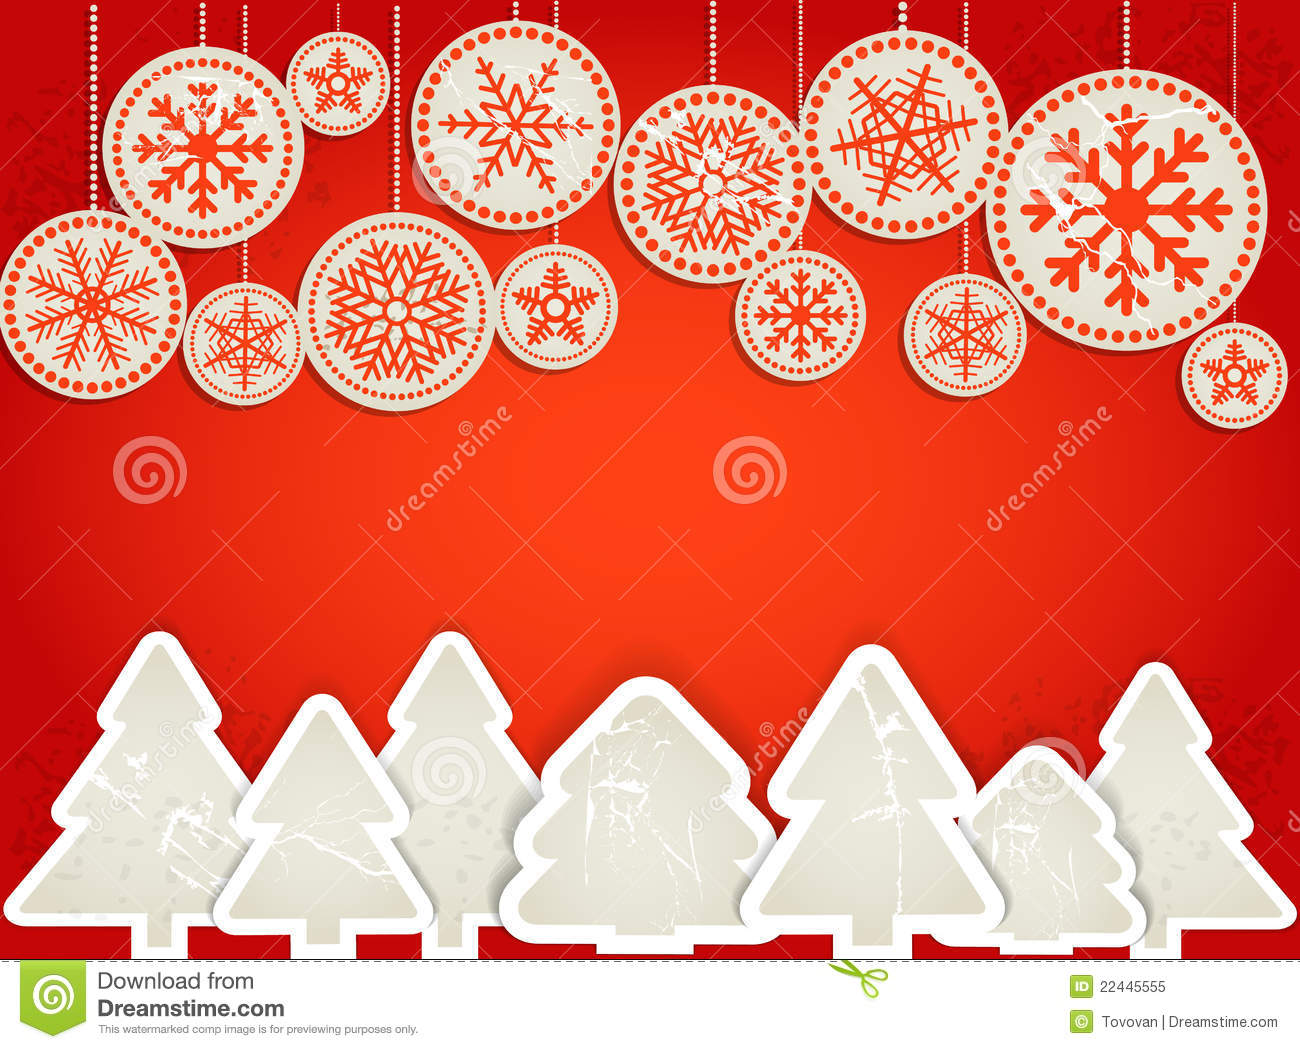 Christmas greeting card. Abstract paper toys